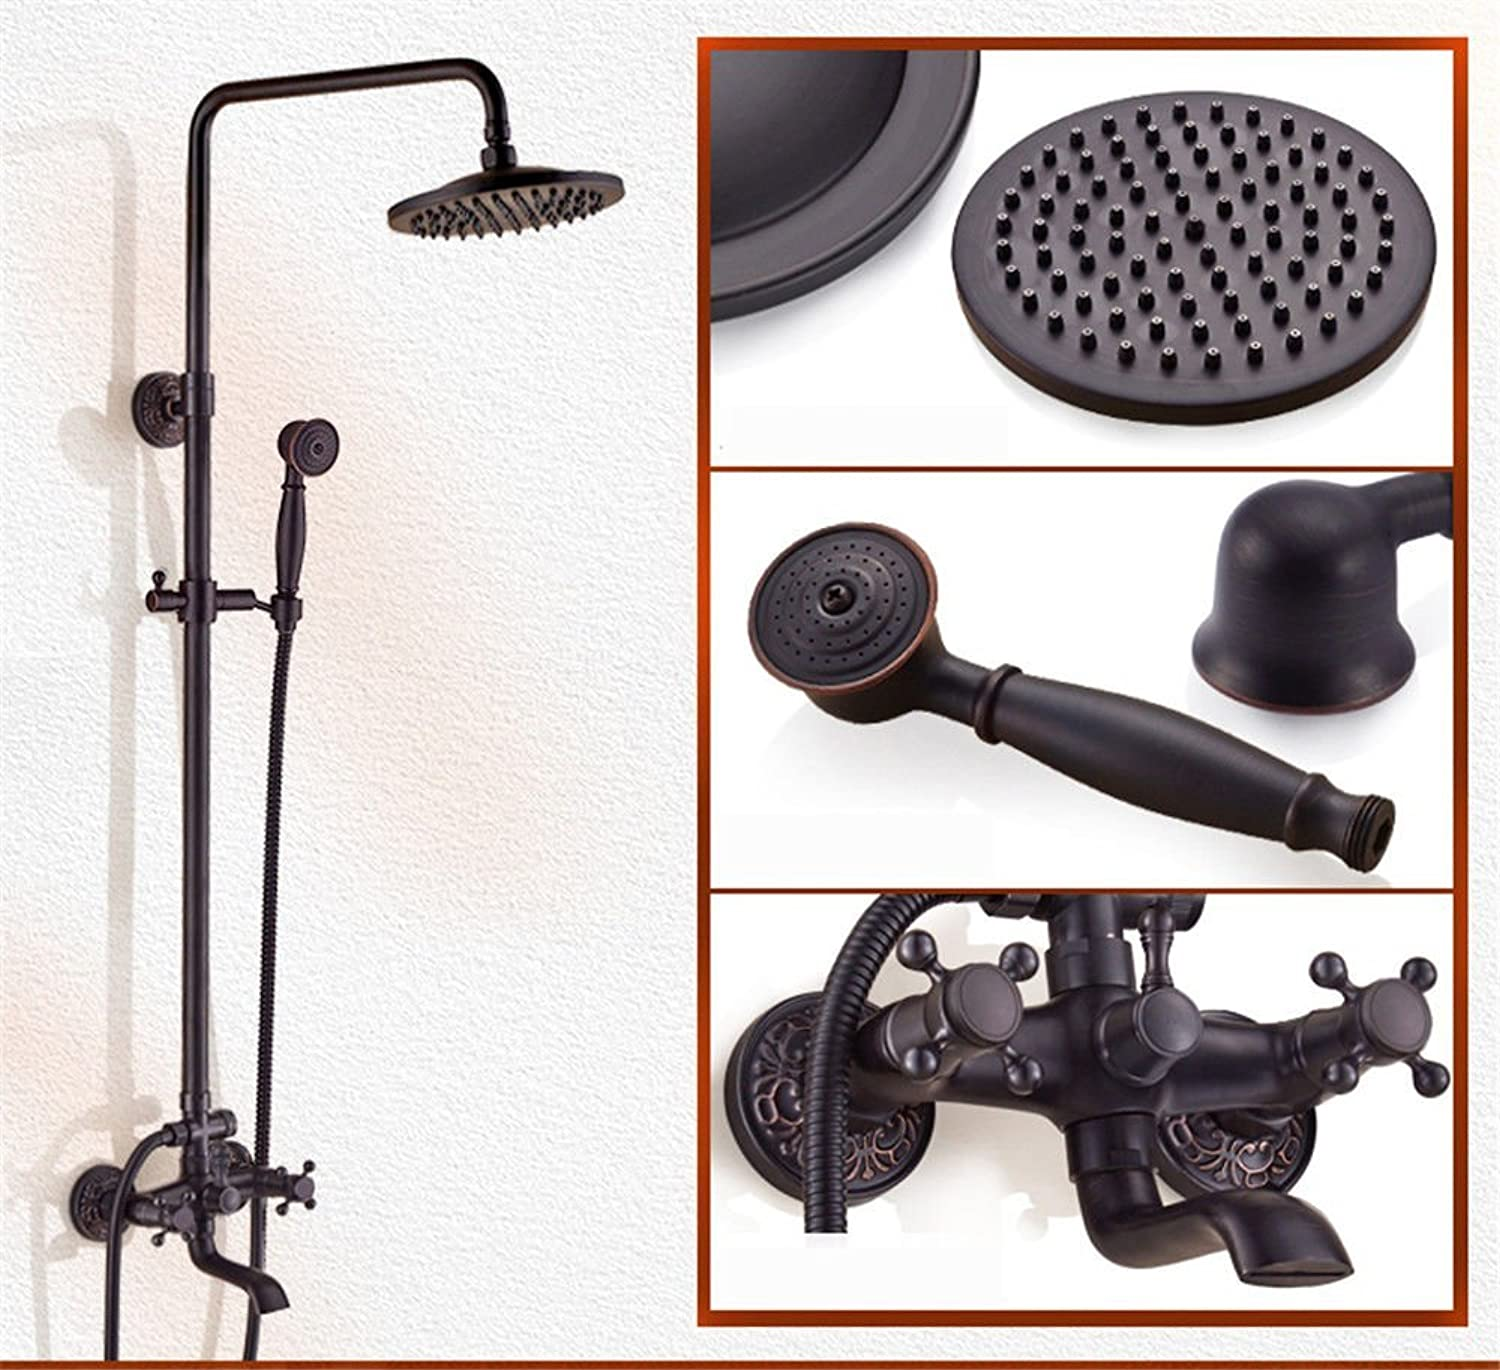 Oudan Bathroom Sink Basin Tap Brass Mixer Tap Washroom Mixer Faucet Black shower kit full copper hot and cold faucets antique home Bathroom Wall shower Kitchen